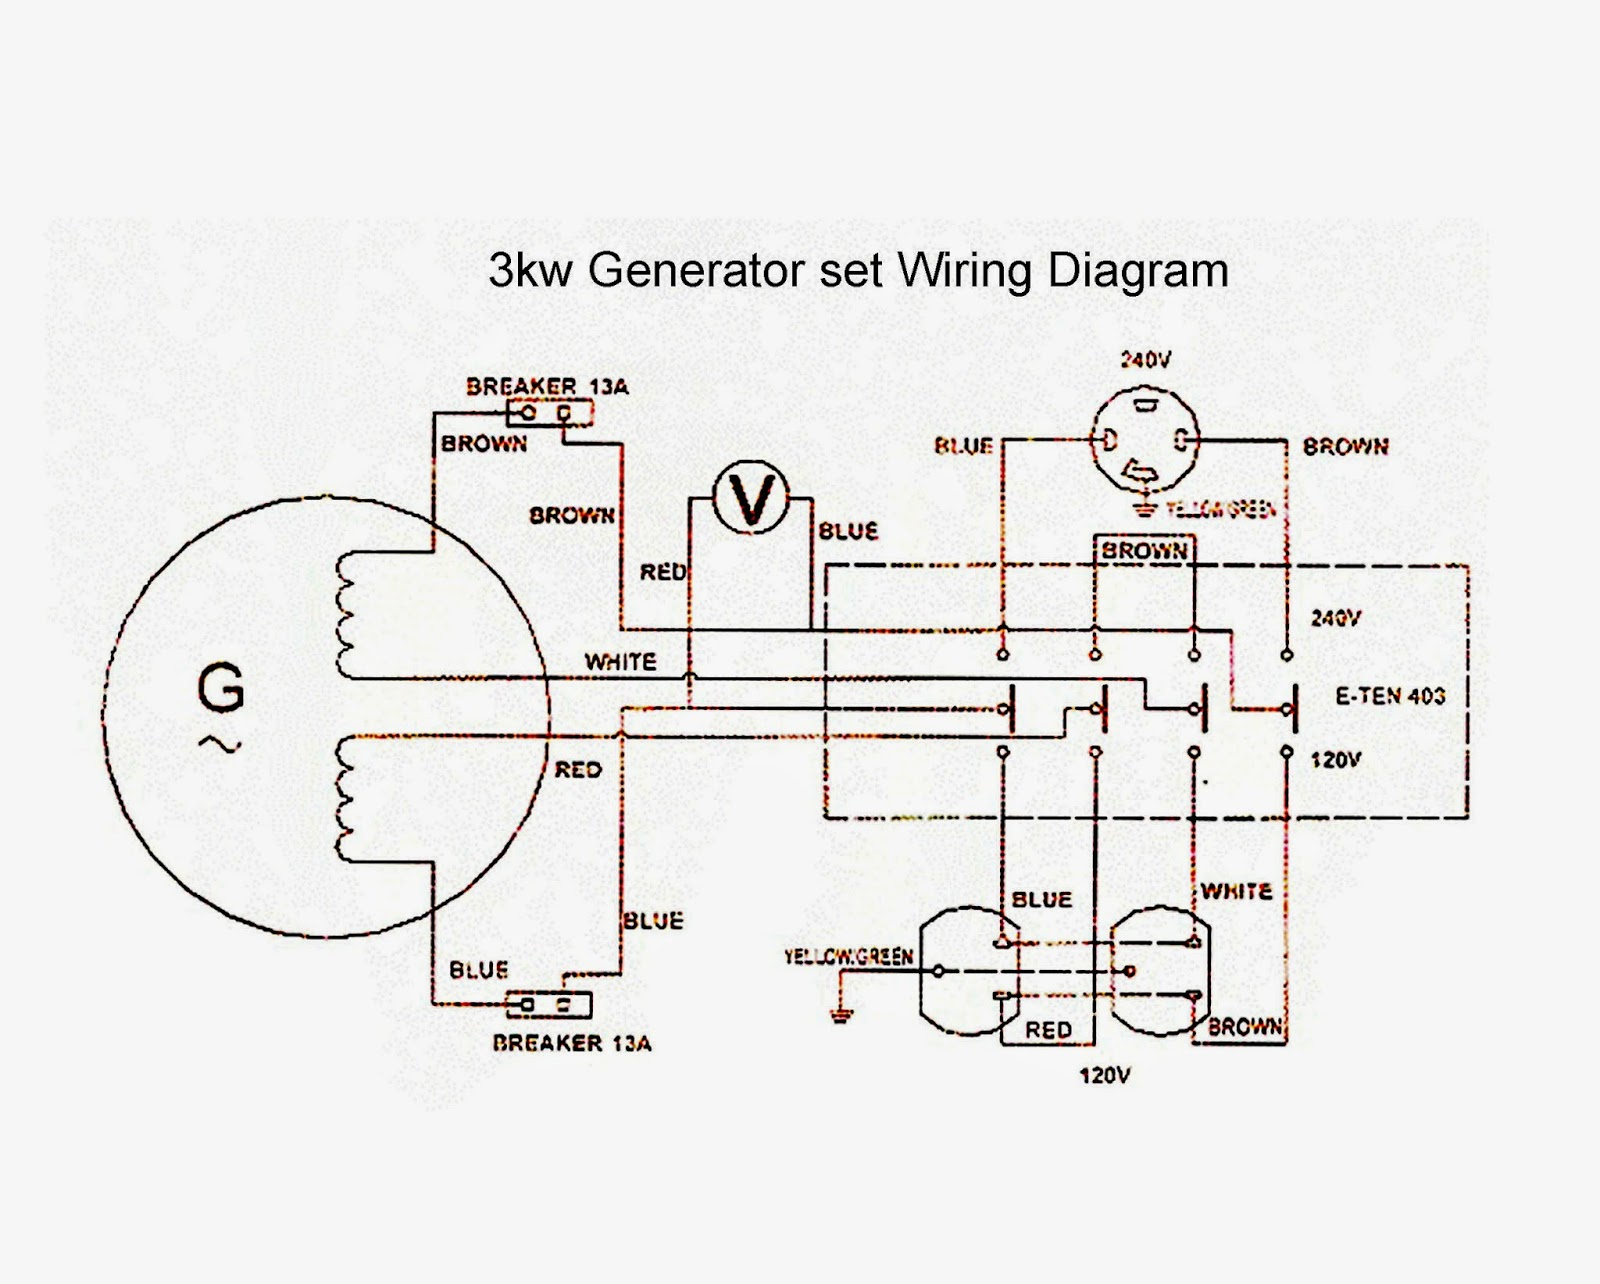 Generator Wiring Diagrams | Wiring Diagram on 4.0 onan generator manuals, onan remote start wiring diagram, rv generator installation diagram, onan diesel generator parts diagram, onan generator carburetor diagram, kubota generator wiring diagram, onan coil wiring diagram, onan engine parts diagram, onan marquis 7000 parts diagram, onan generator engine diagram, onan transfer switch wiring diagram, onan engine wiring diagram, onan starter solenoid wiring diagram, onan 5500 carburetor diagram, 4.0 onan generator parts, cummins generator wiring diagram, onan rv generator parts diagram,